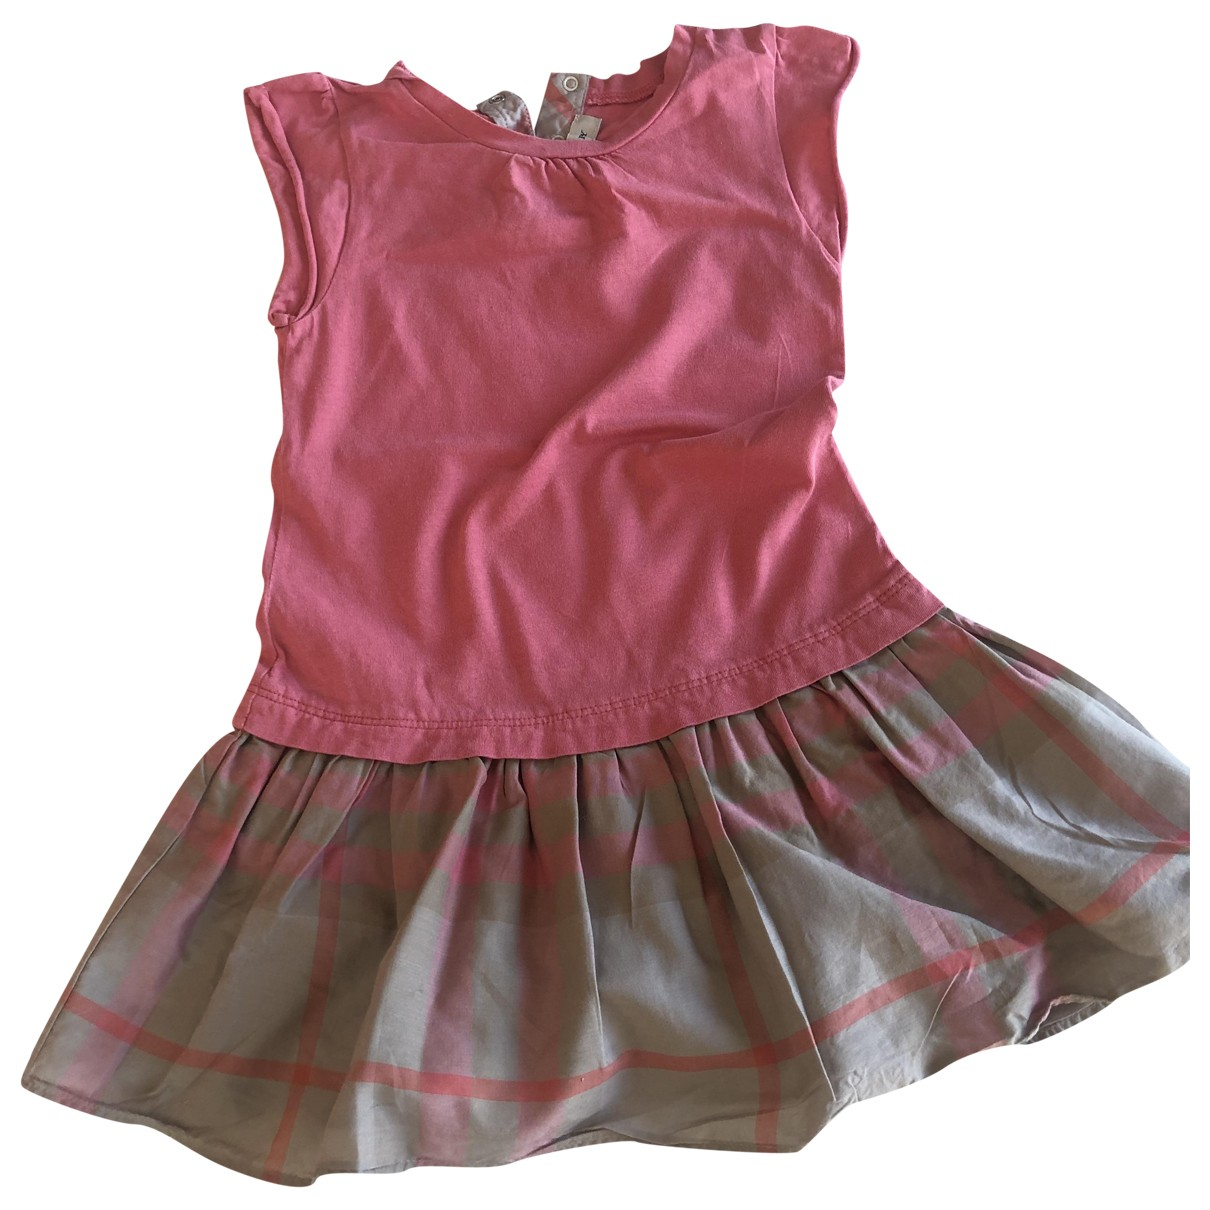 Burberry \N Pink Cotton dress for Kids 3 years - up to 98cm FR